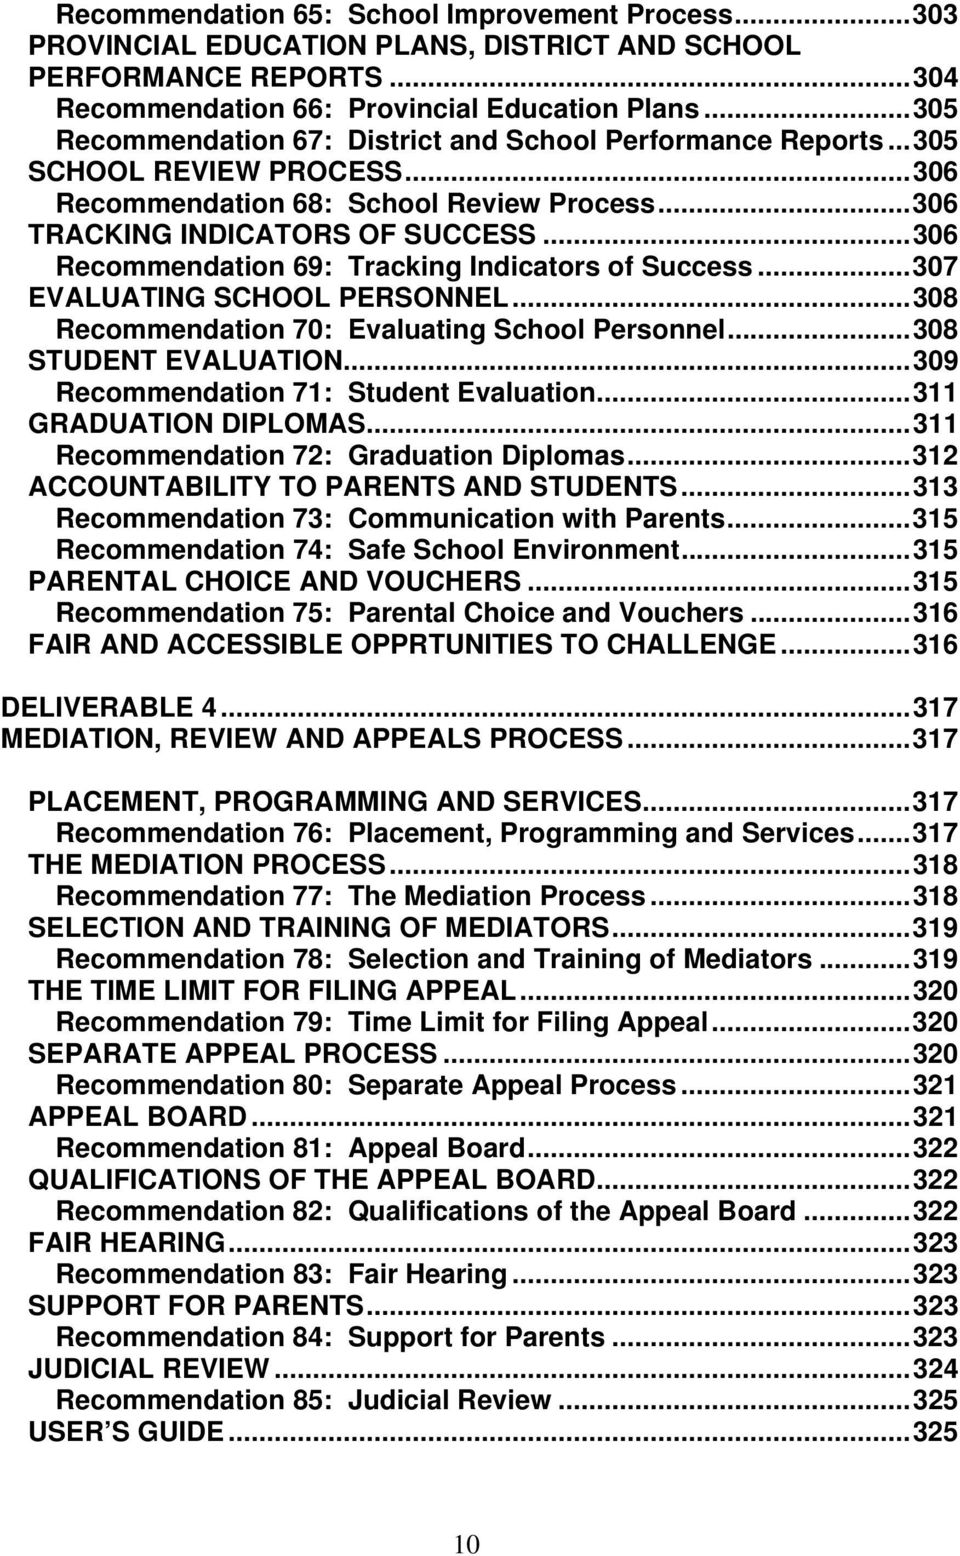 ..306 Recommendation 69: Tracking Indicators of Success...307 EVALUATING SCHOOL PERSONNEL...308 Recommendation 70: Evaluating School Personnel...308 STUDENT EVALUATION.